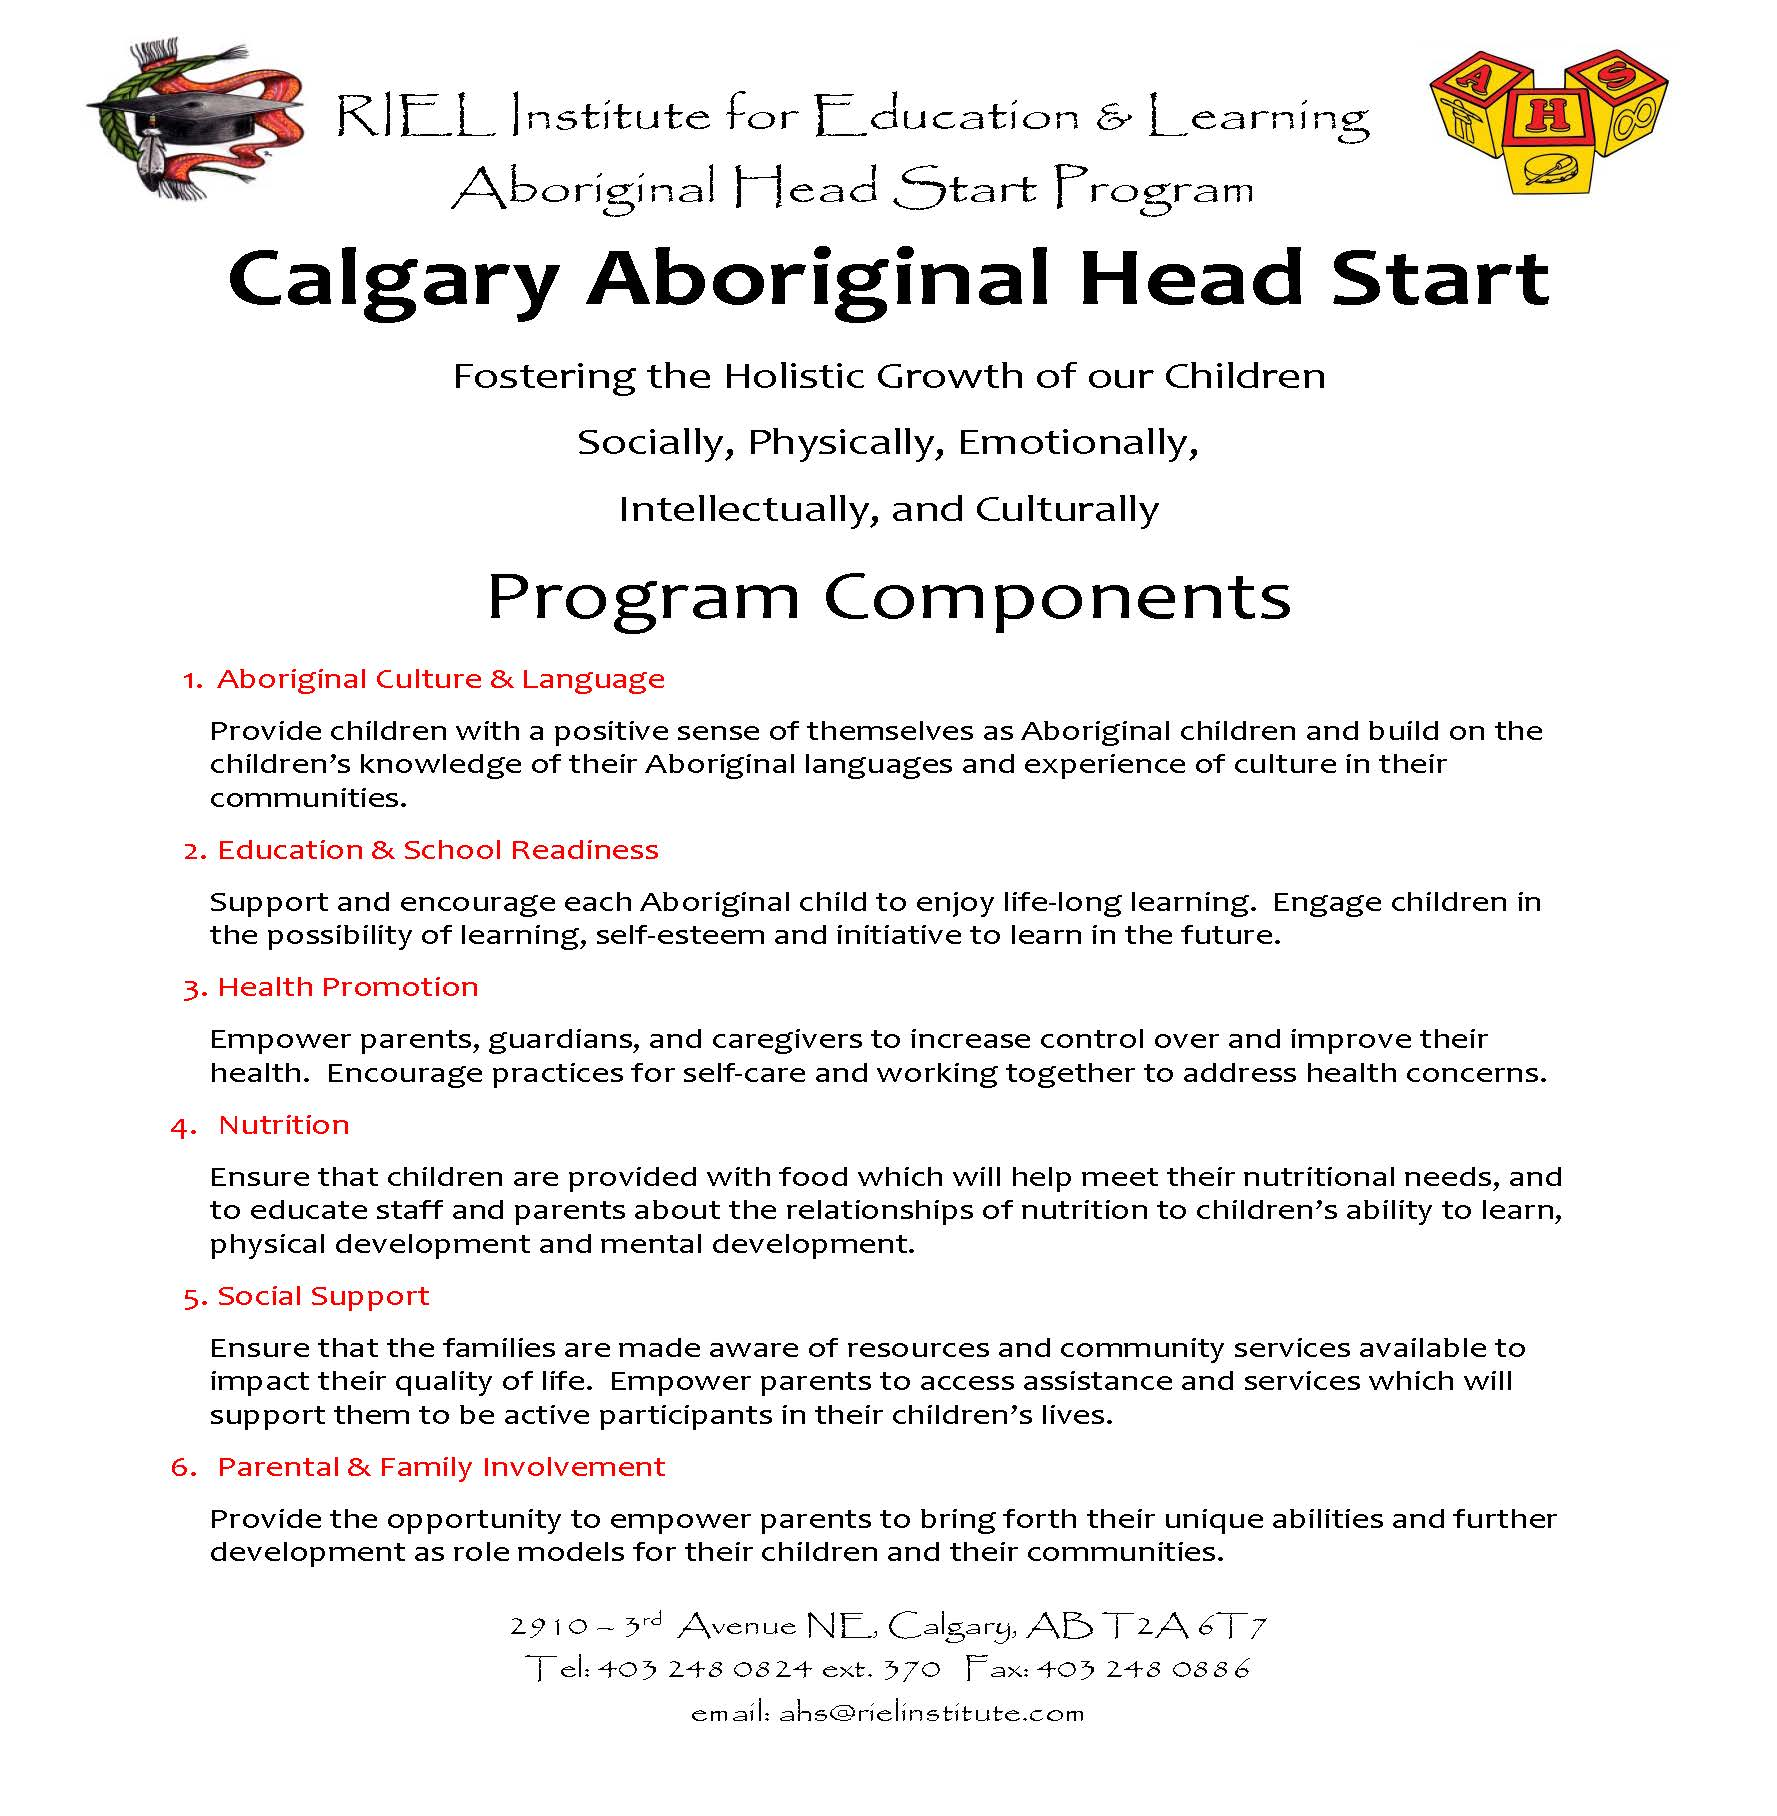 Aboriginal Head Start program